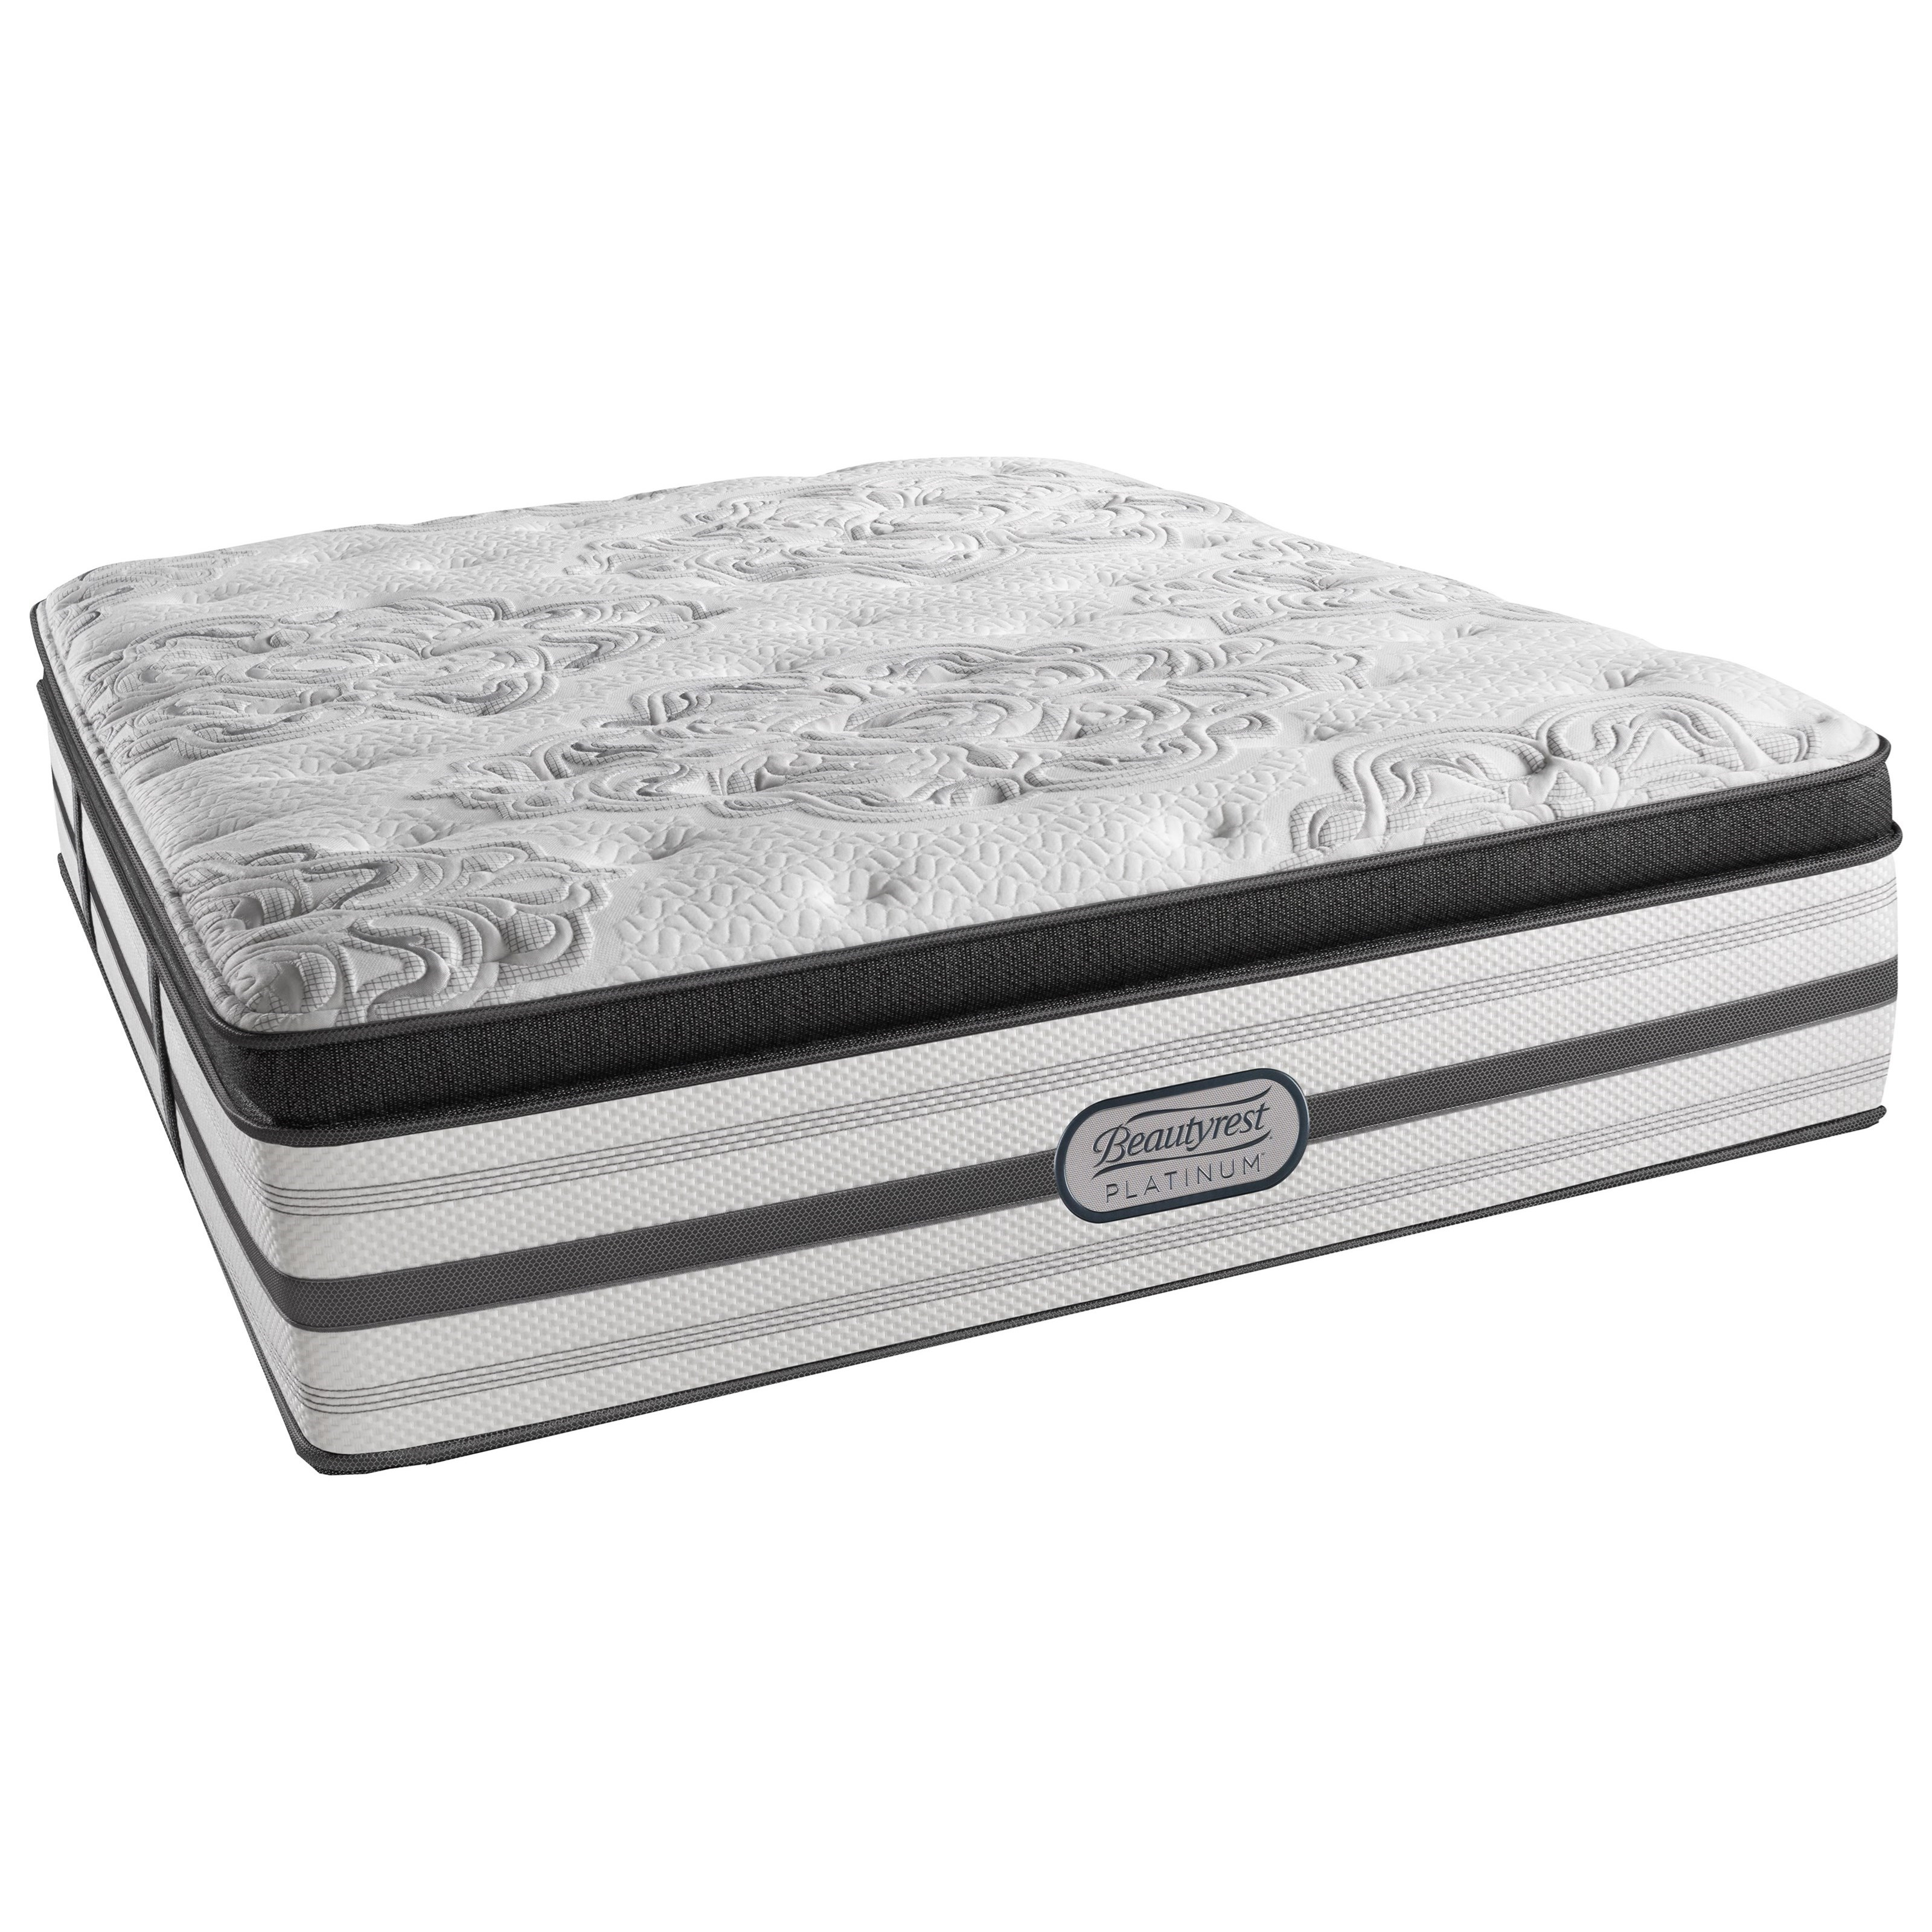 "Beautyrest Platinum Katherine Twin Plush Box PT 16 1/2"" Mattress - Item Number: LV4PLBT-T"